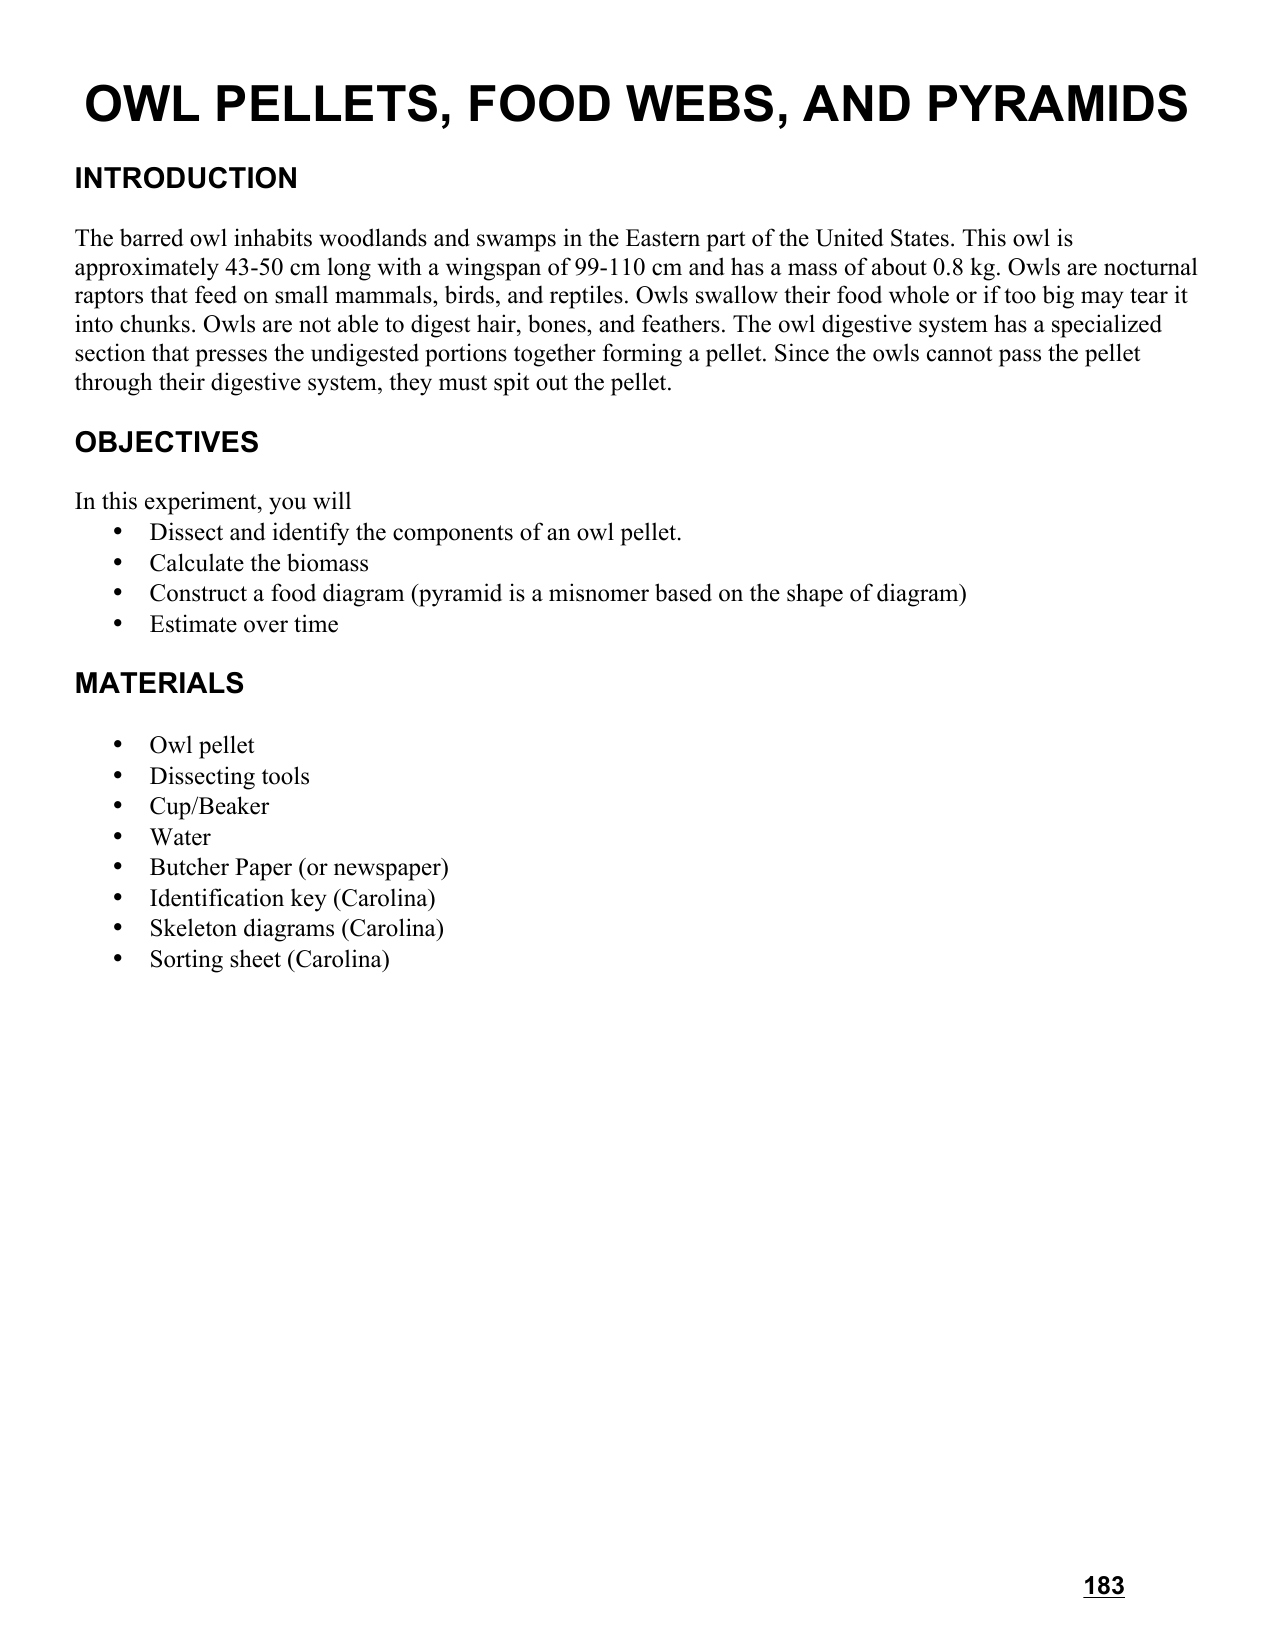 OWL PELLETS FOOD WEBS AND PYRAMIDS – Owl Pellet Dissection Worksheet